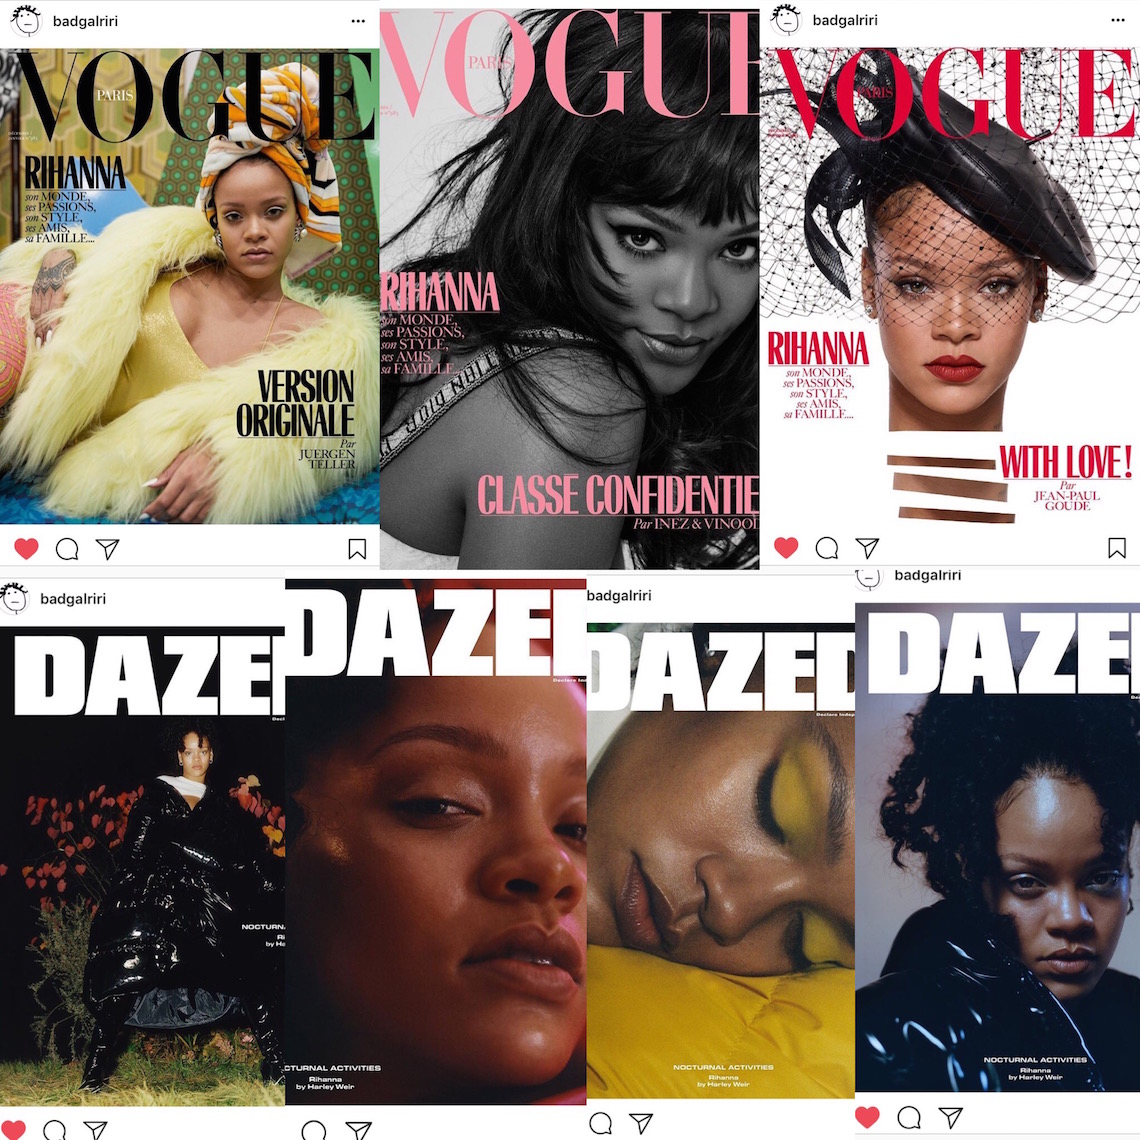 rihanna magazine covers-badgalriri screenshots